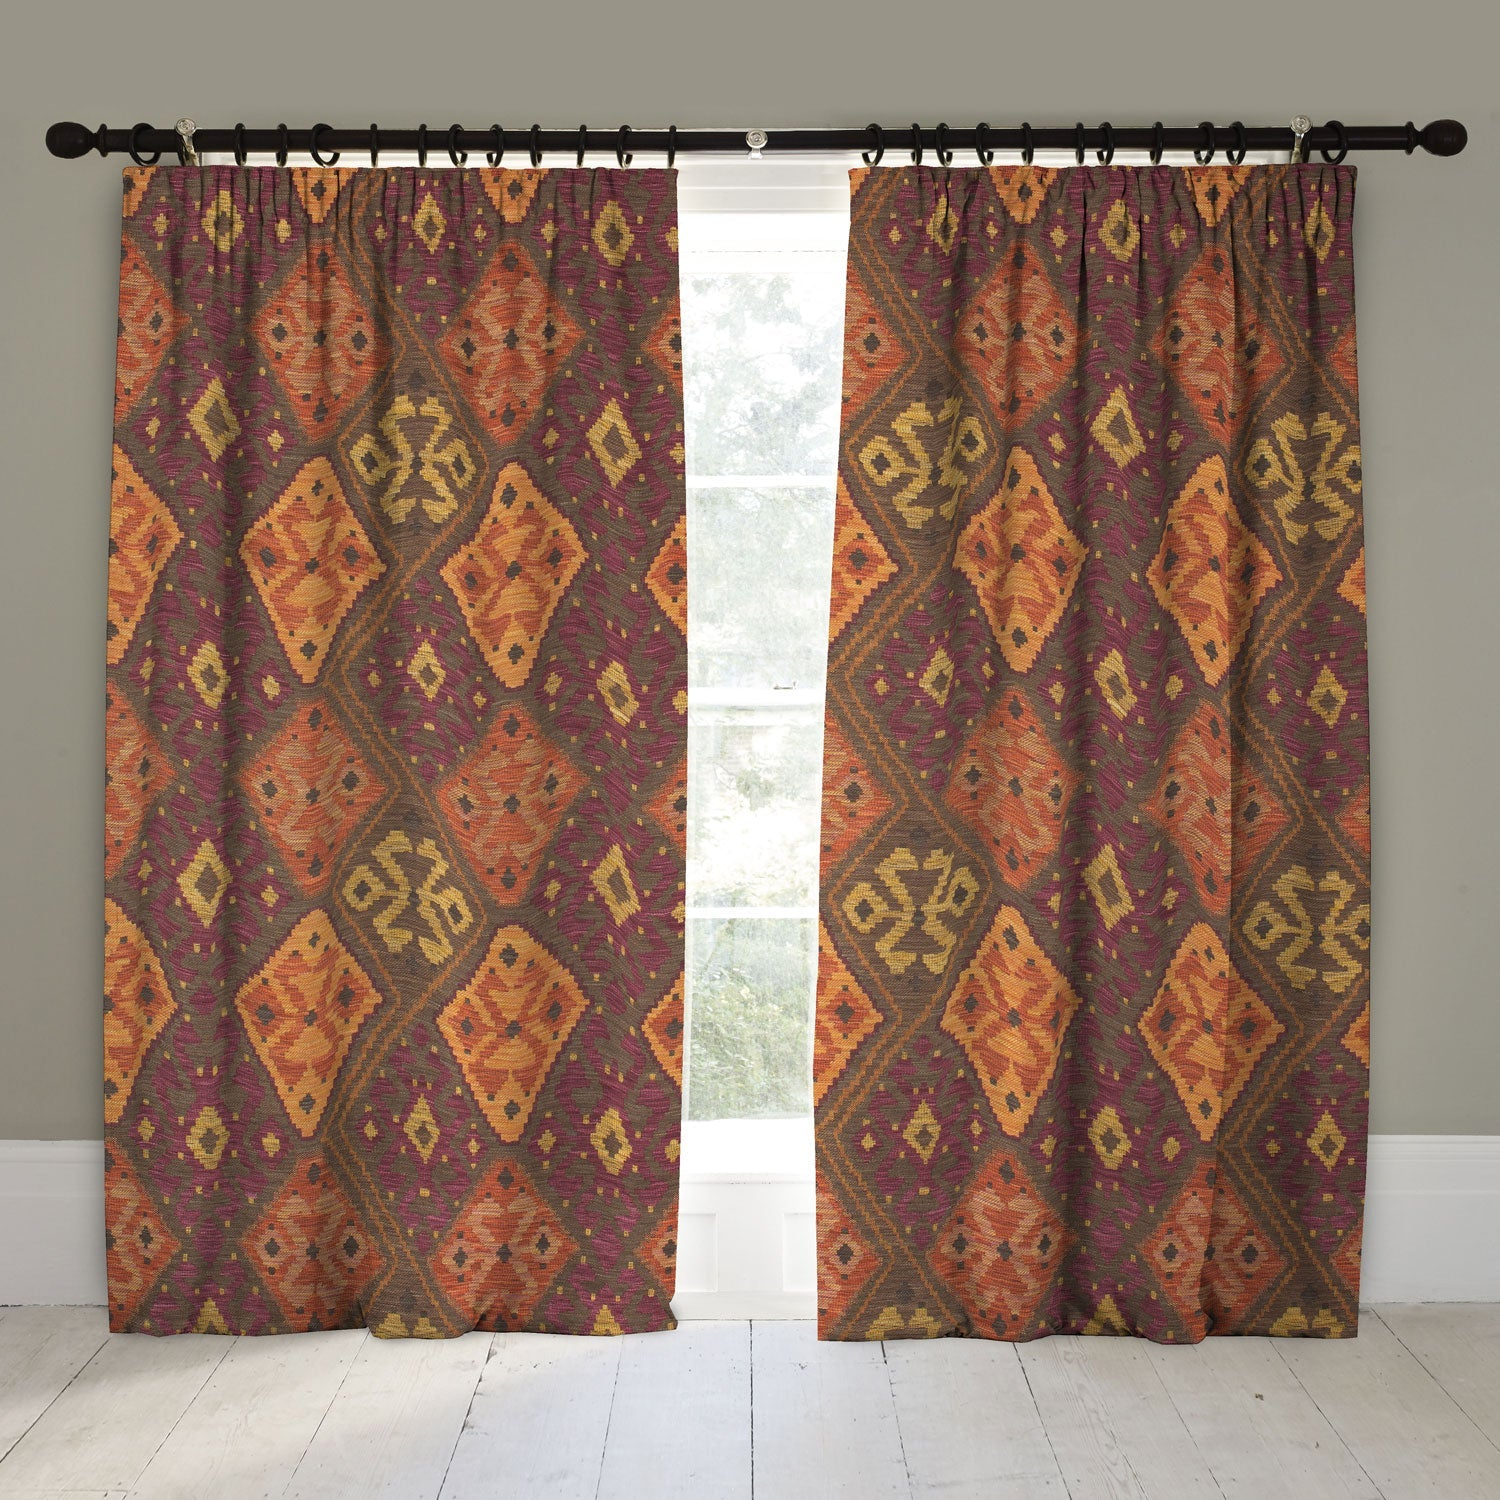 Curtains in a terracotta, dark berry and neutral Kilim fabric